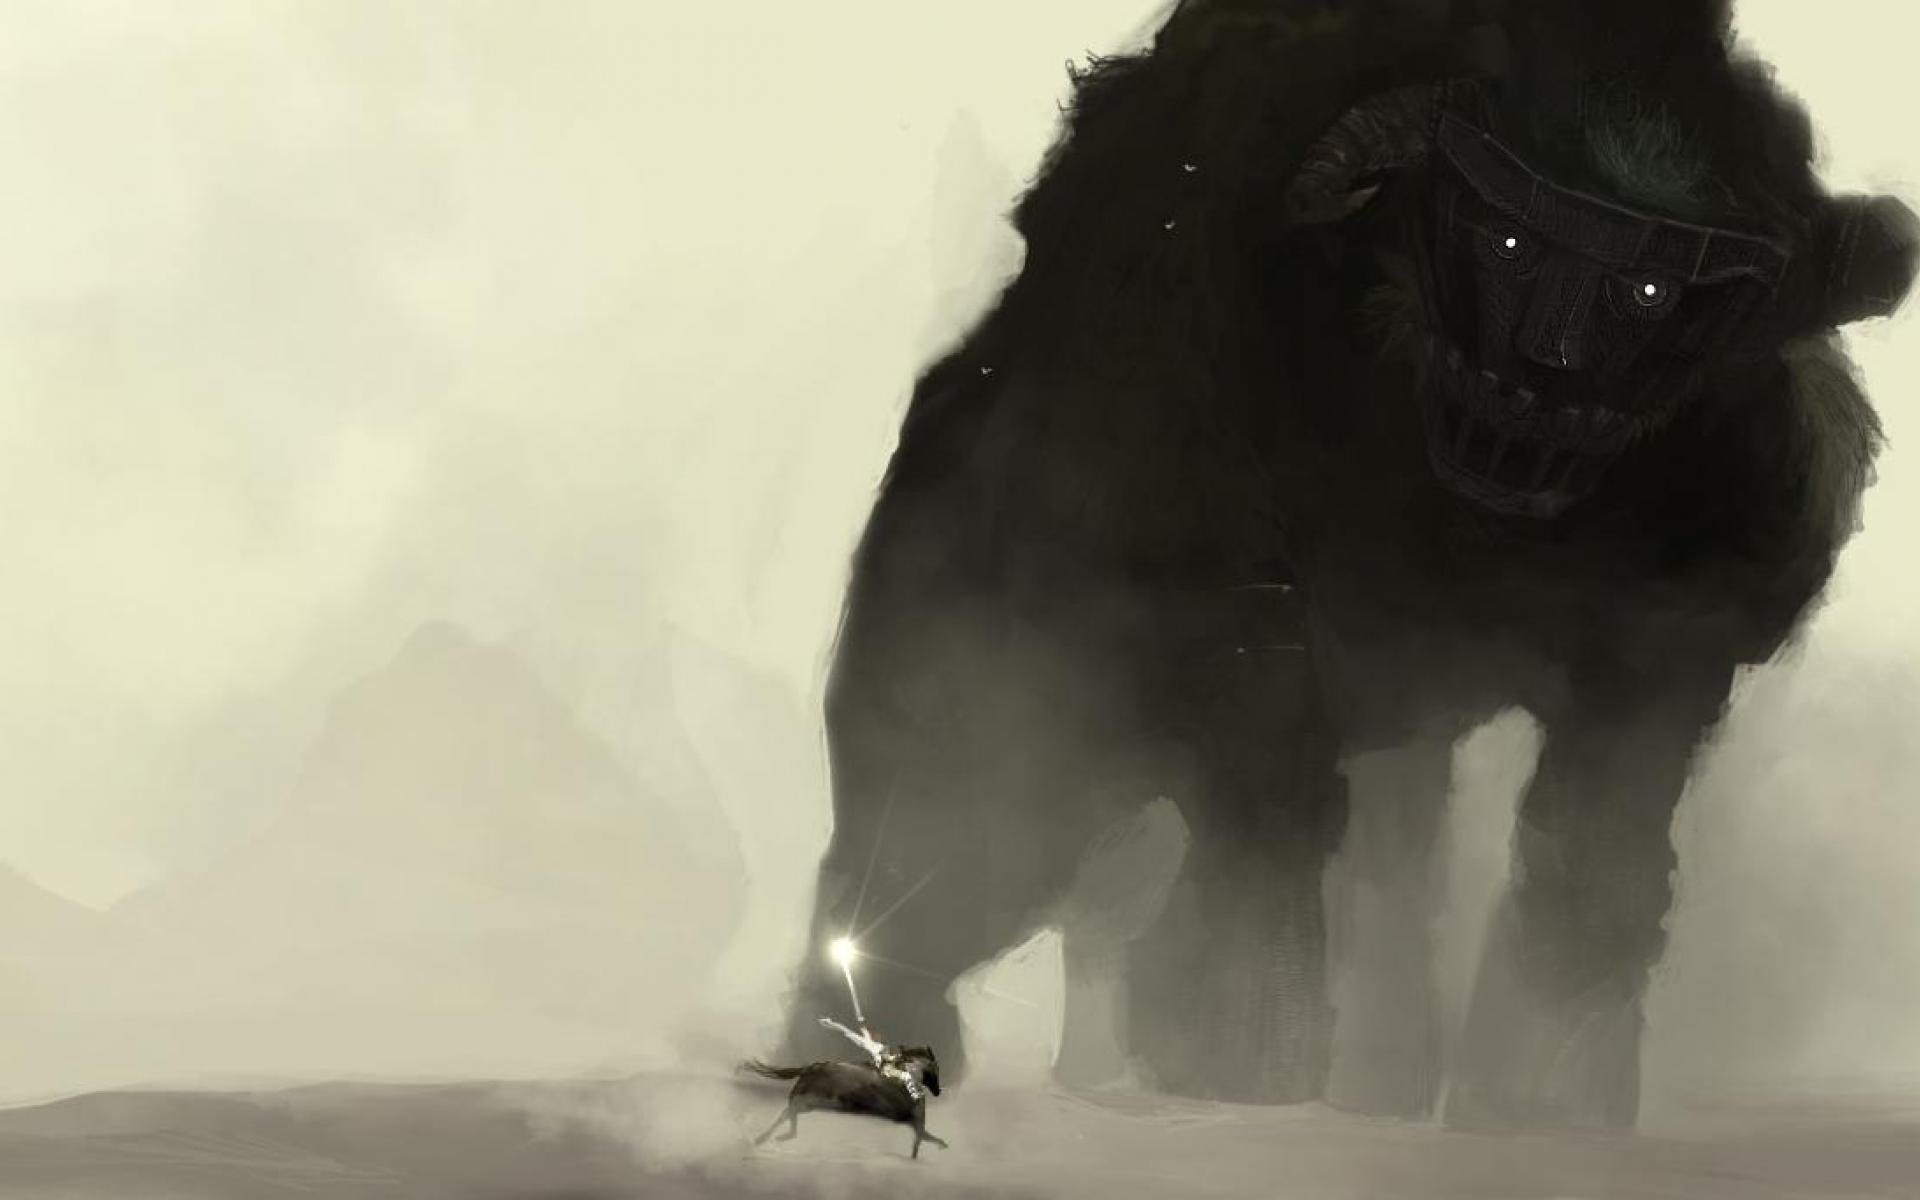 SHADOW OF THE COLOSSUS action adventure fantasy (80) wallpaper |  | 241301 | WallpaperUP